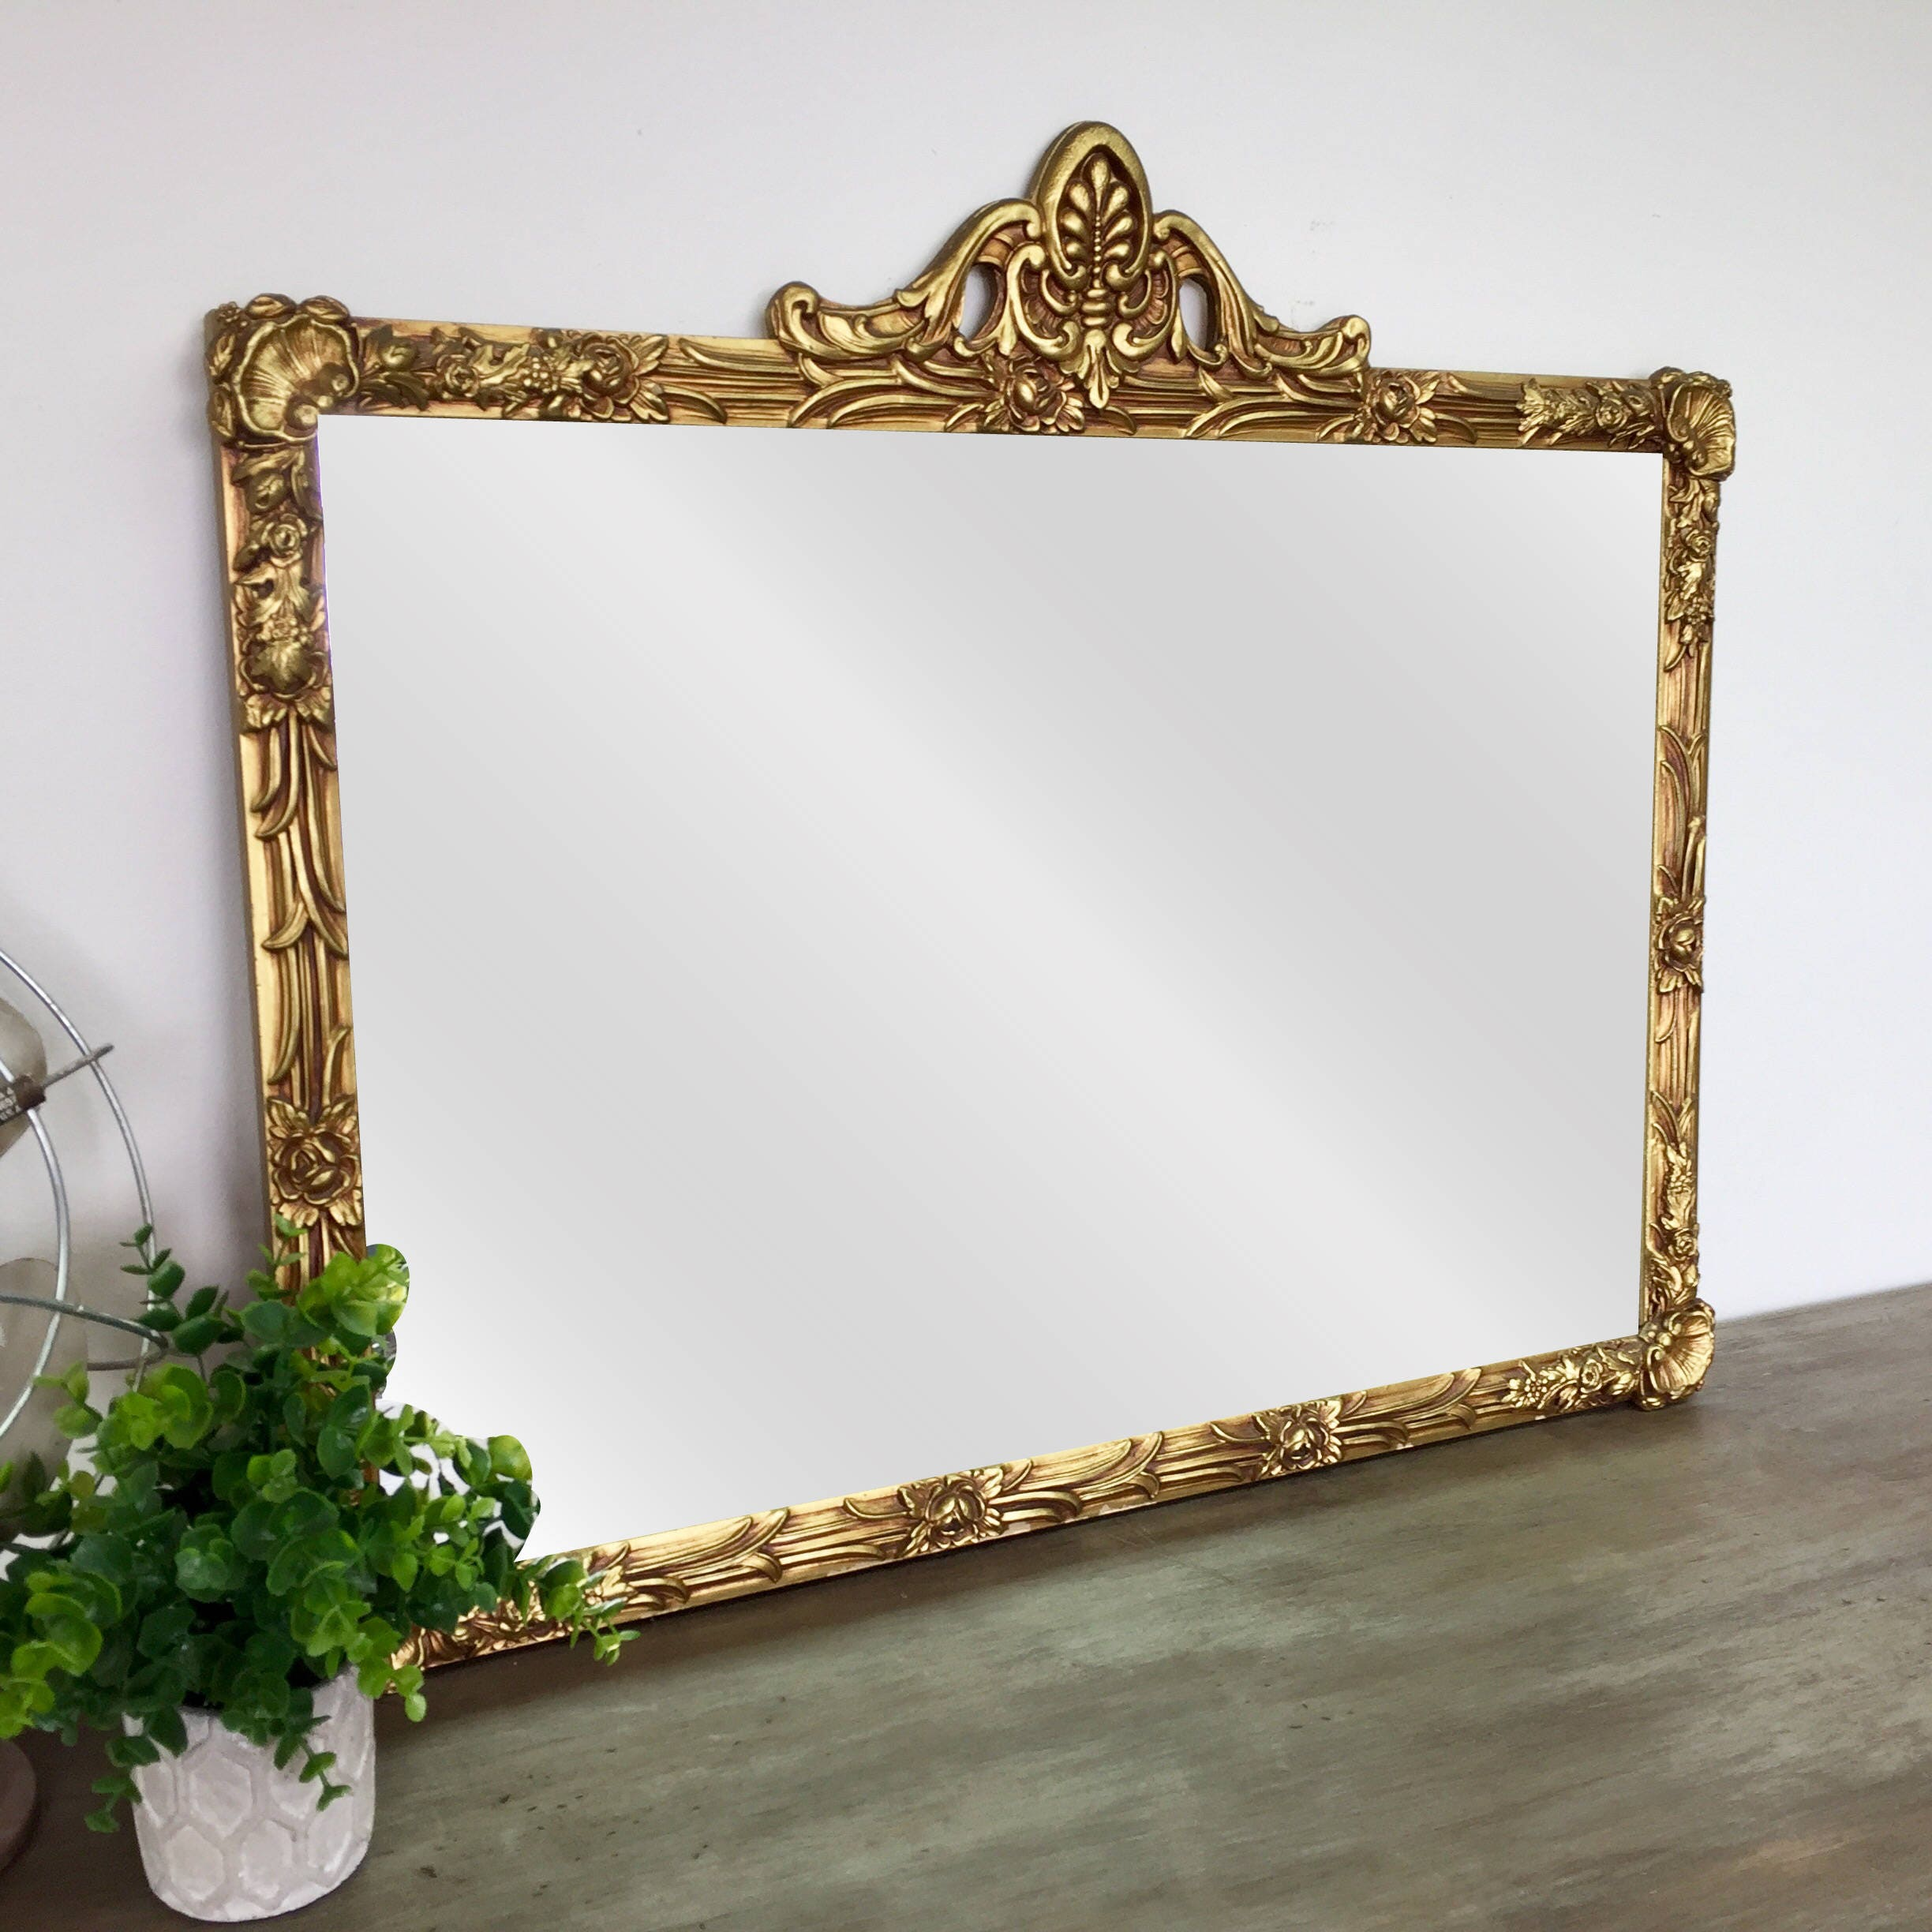 Gold Framed Mirror Antique Gold Mirror Mirror Wall Decor Ornate